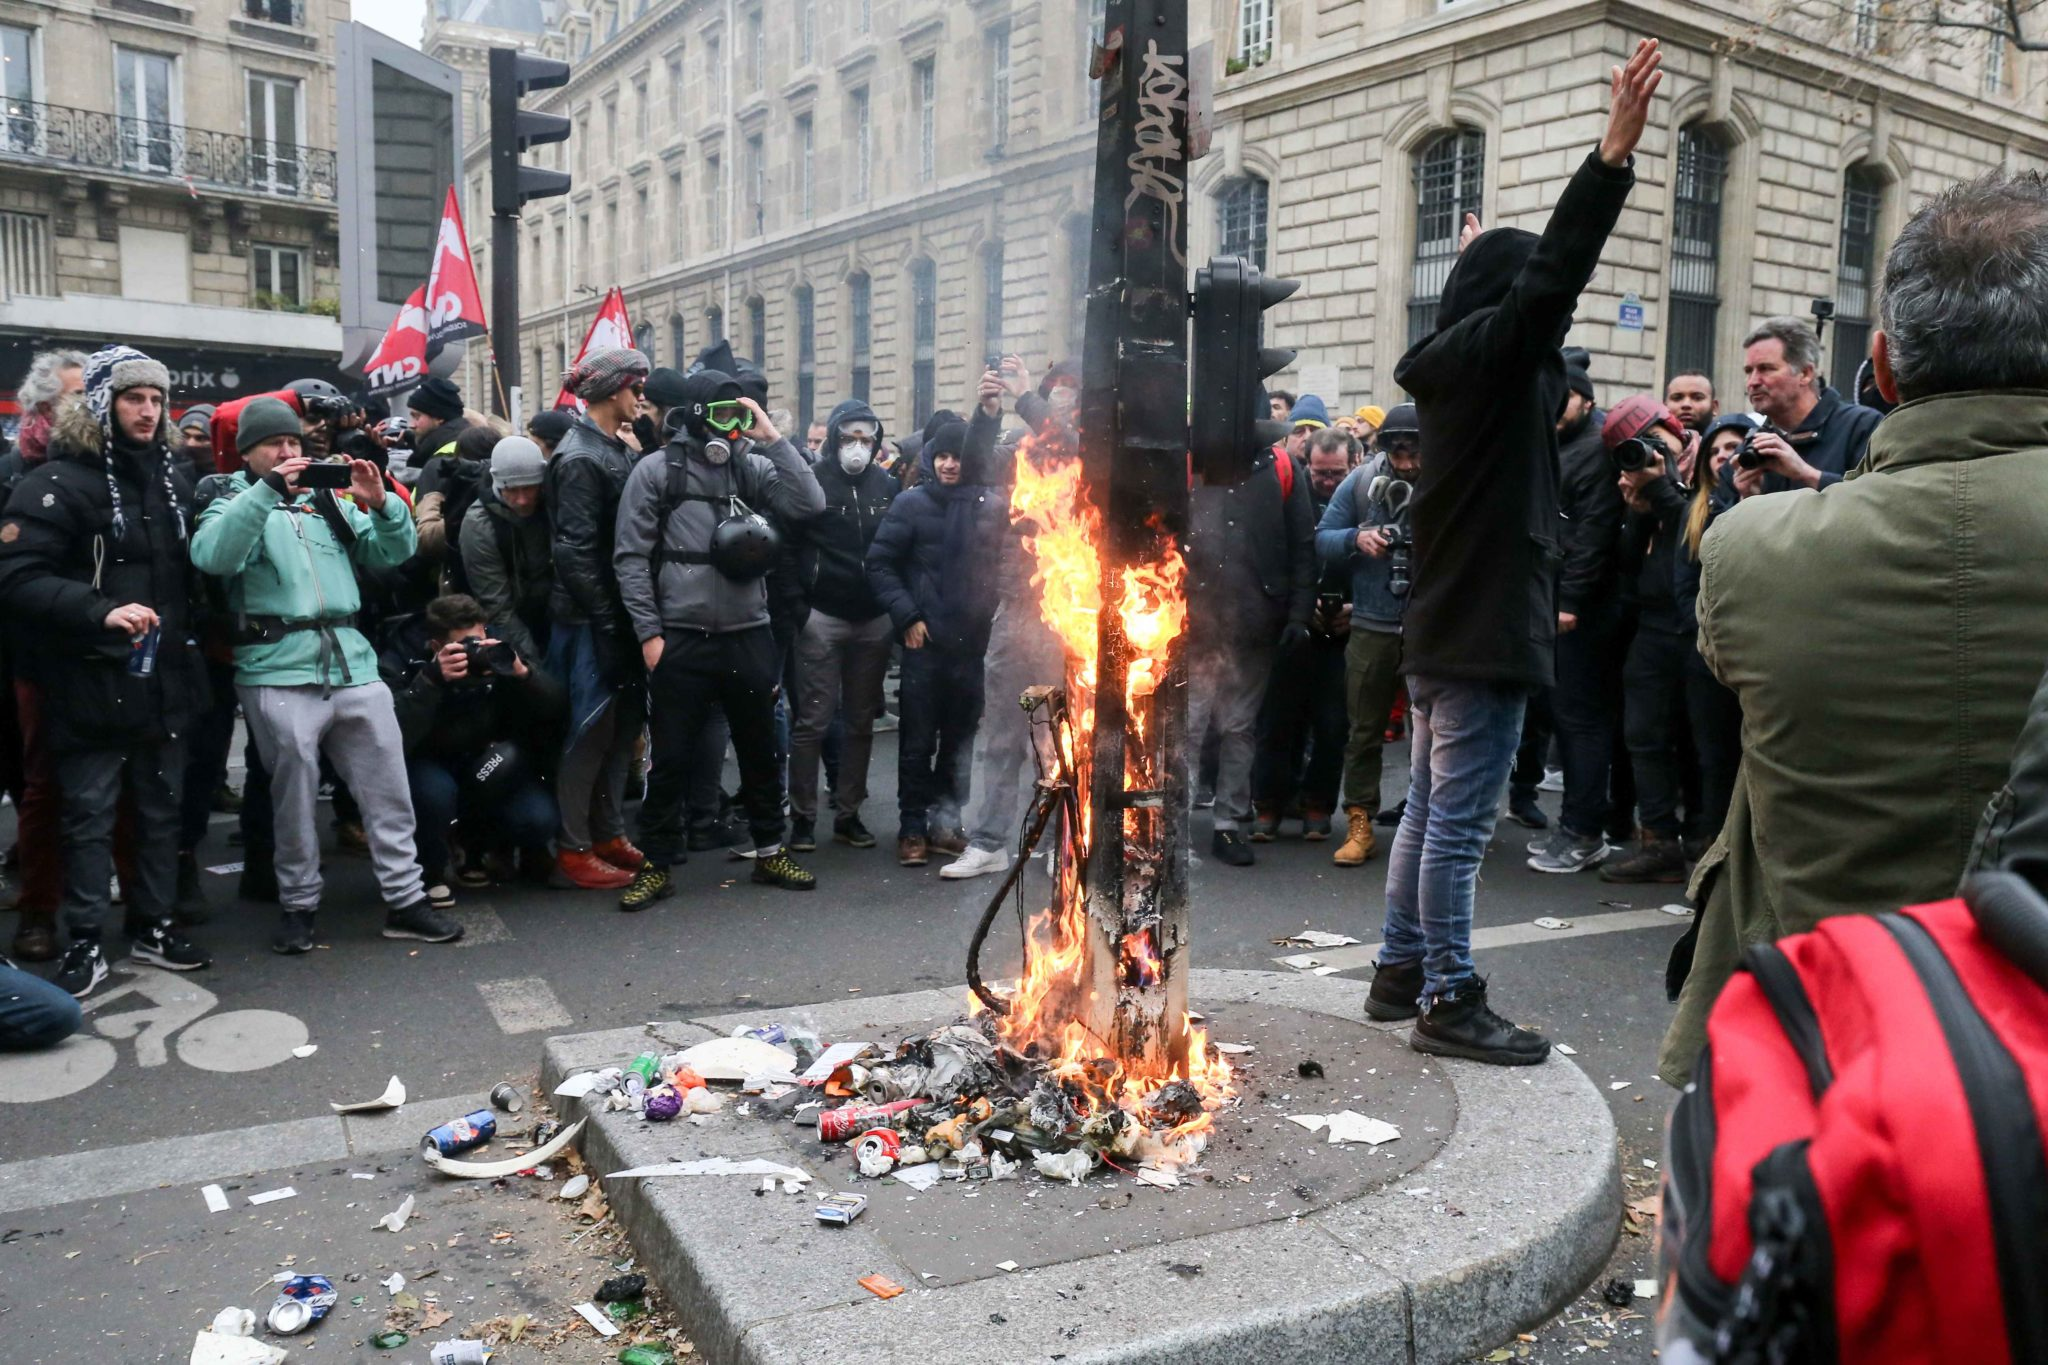 Protesters burn a traffic sign post during a demontration to protest against the pension overhauls, in Paris, on December 5, 2019 as part of a national general strike. Trains cancelled, schools closed: France scrambled to make contingency plans on for a hu